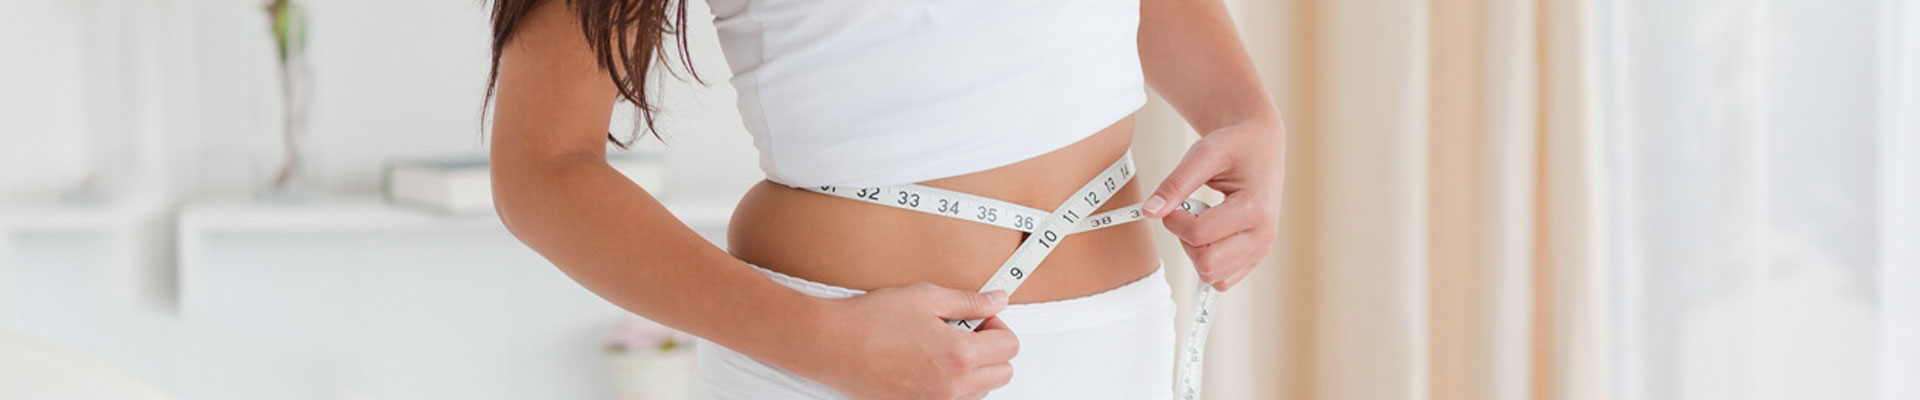 Weight loss operation in indore image 1